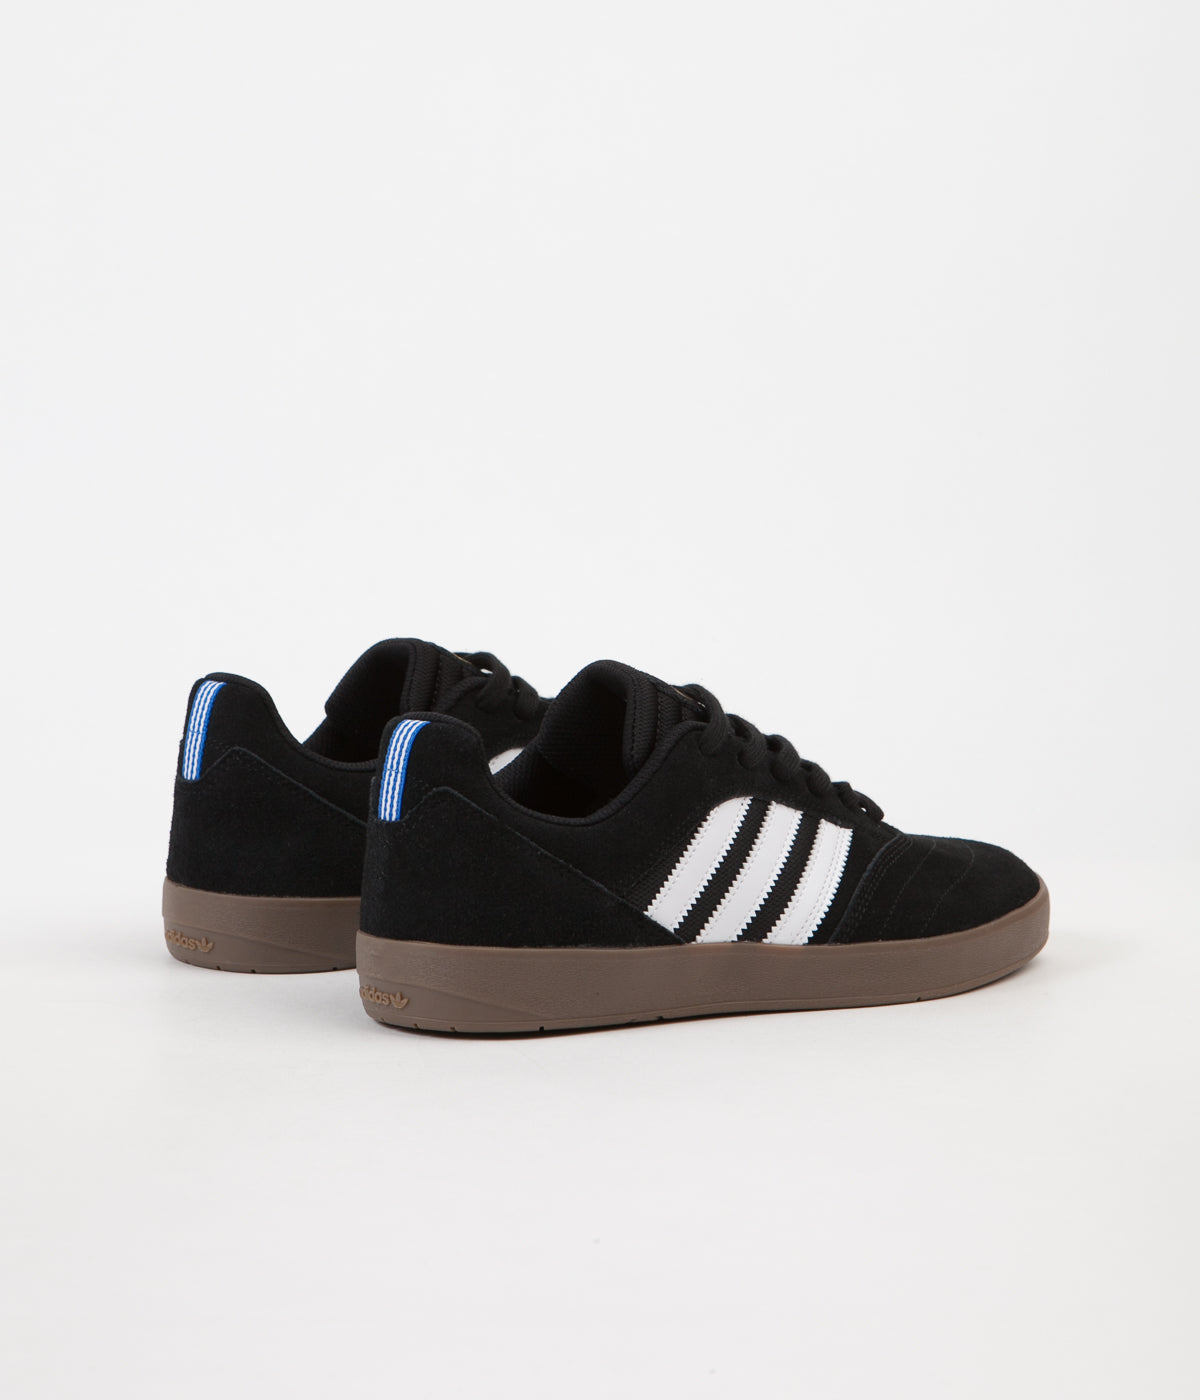 443f1ffb6e1 adidas suciu adv black and white